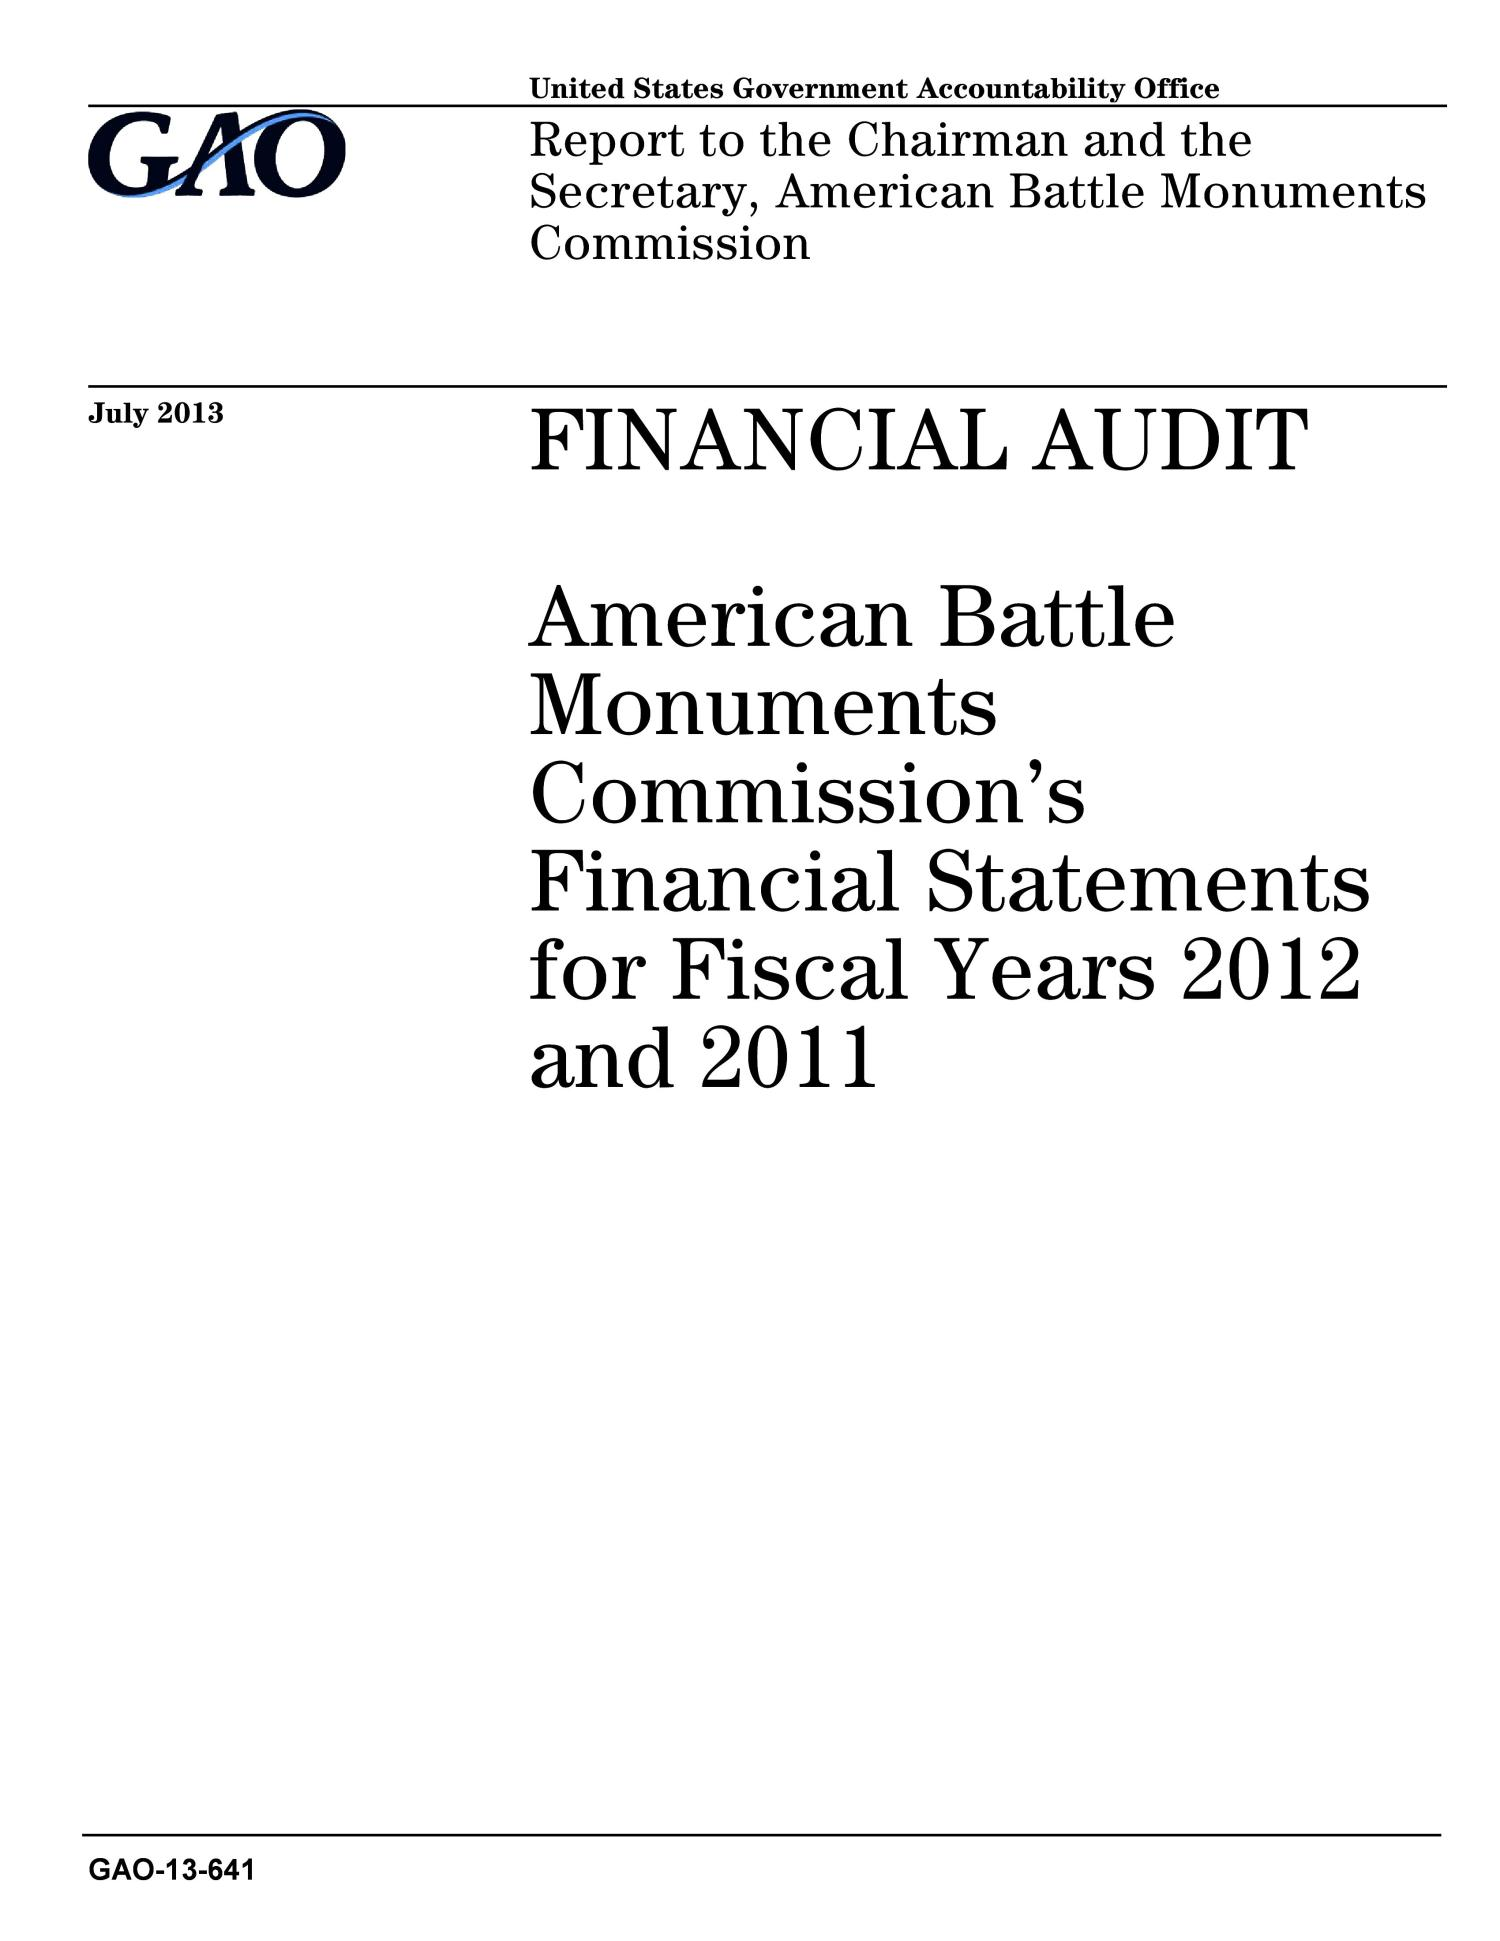 Financial Audit: American Battle Monuments Commission's Financial Statements for Fiscal Years 2012 and 2011                                                                                                      [Sequence #]: 1 of 49